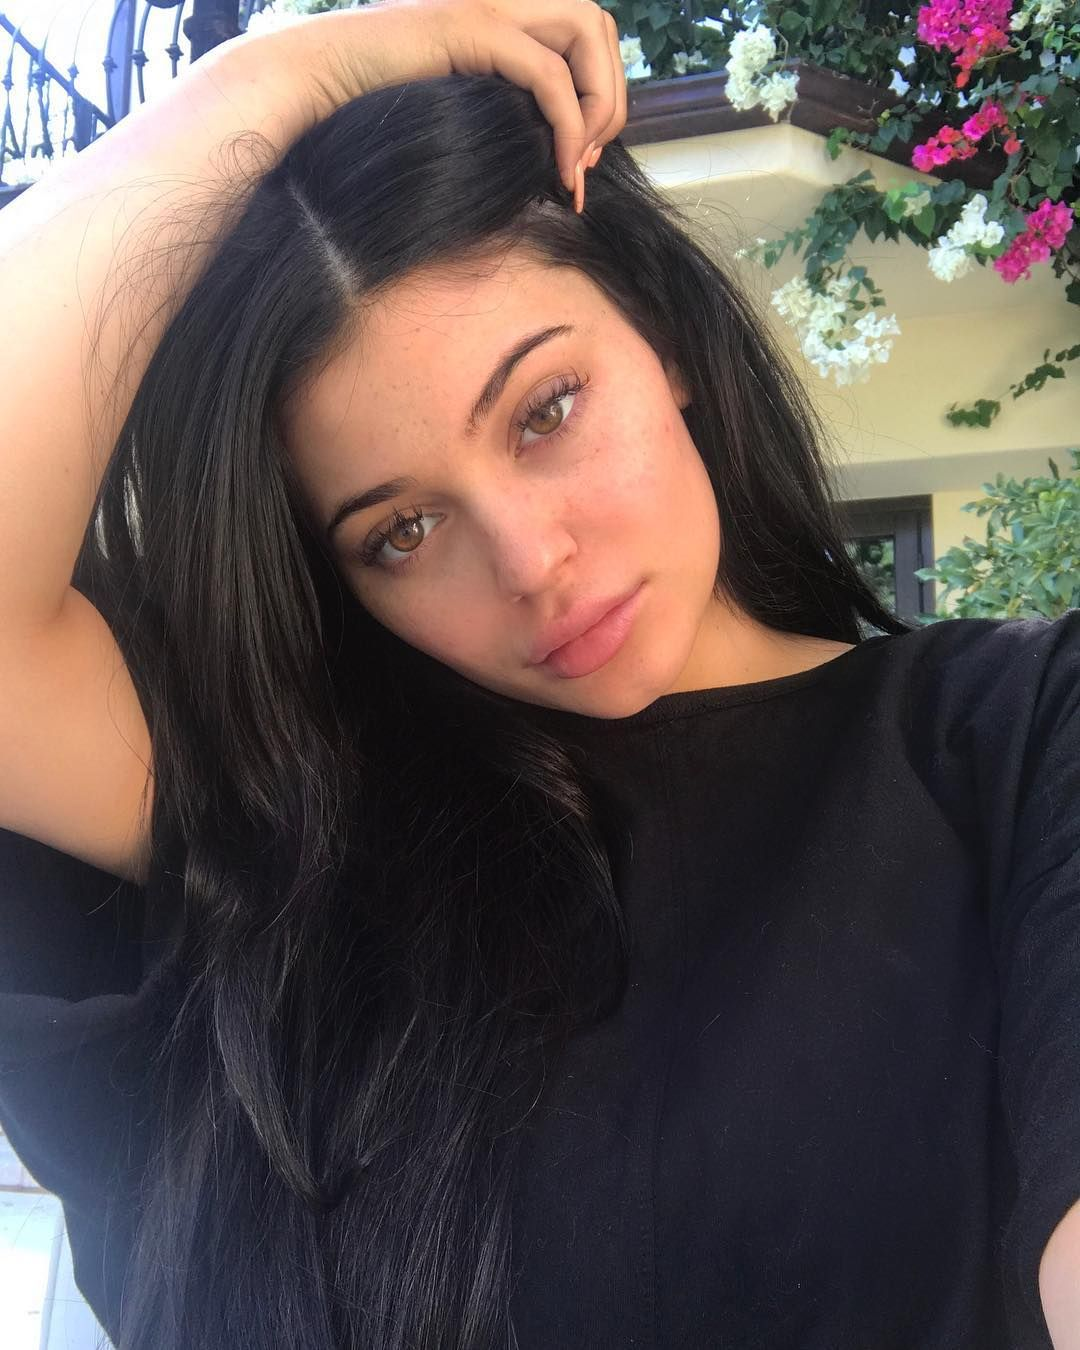 """2m Likes, 33.7k Comments - Kylie (@kyliejenner) on Instagram: """"Friday the 13th """""""